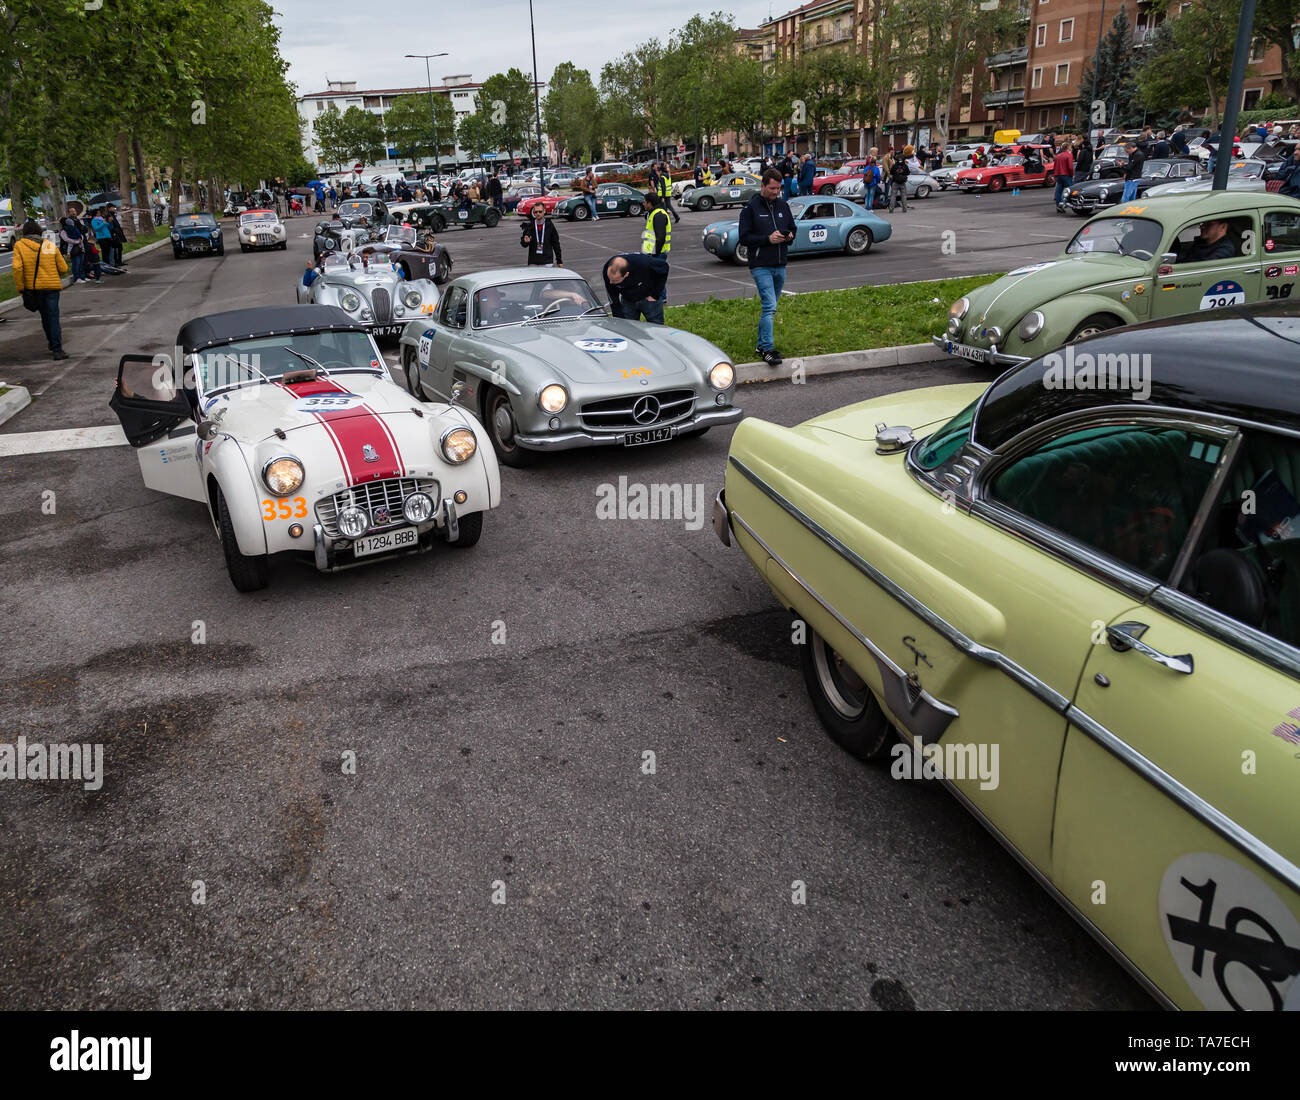 Brescia, Italy - May 18, 2019: Triumphant entry of the classic